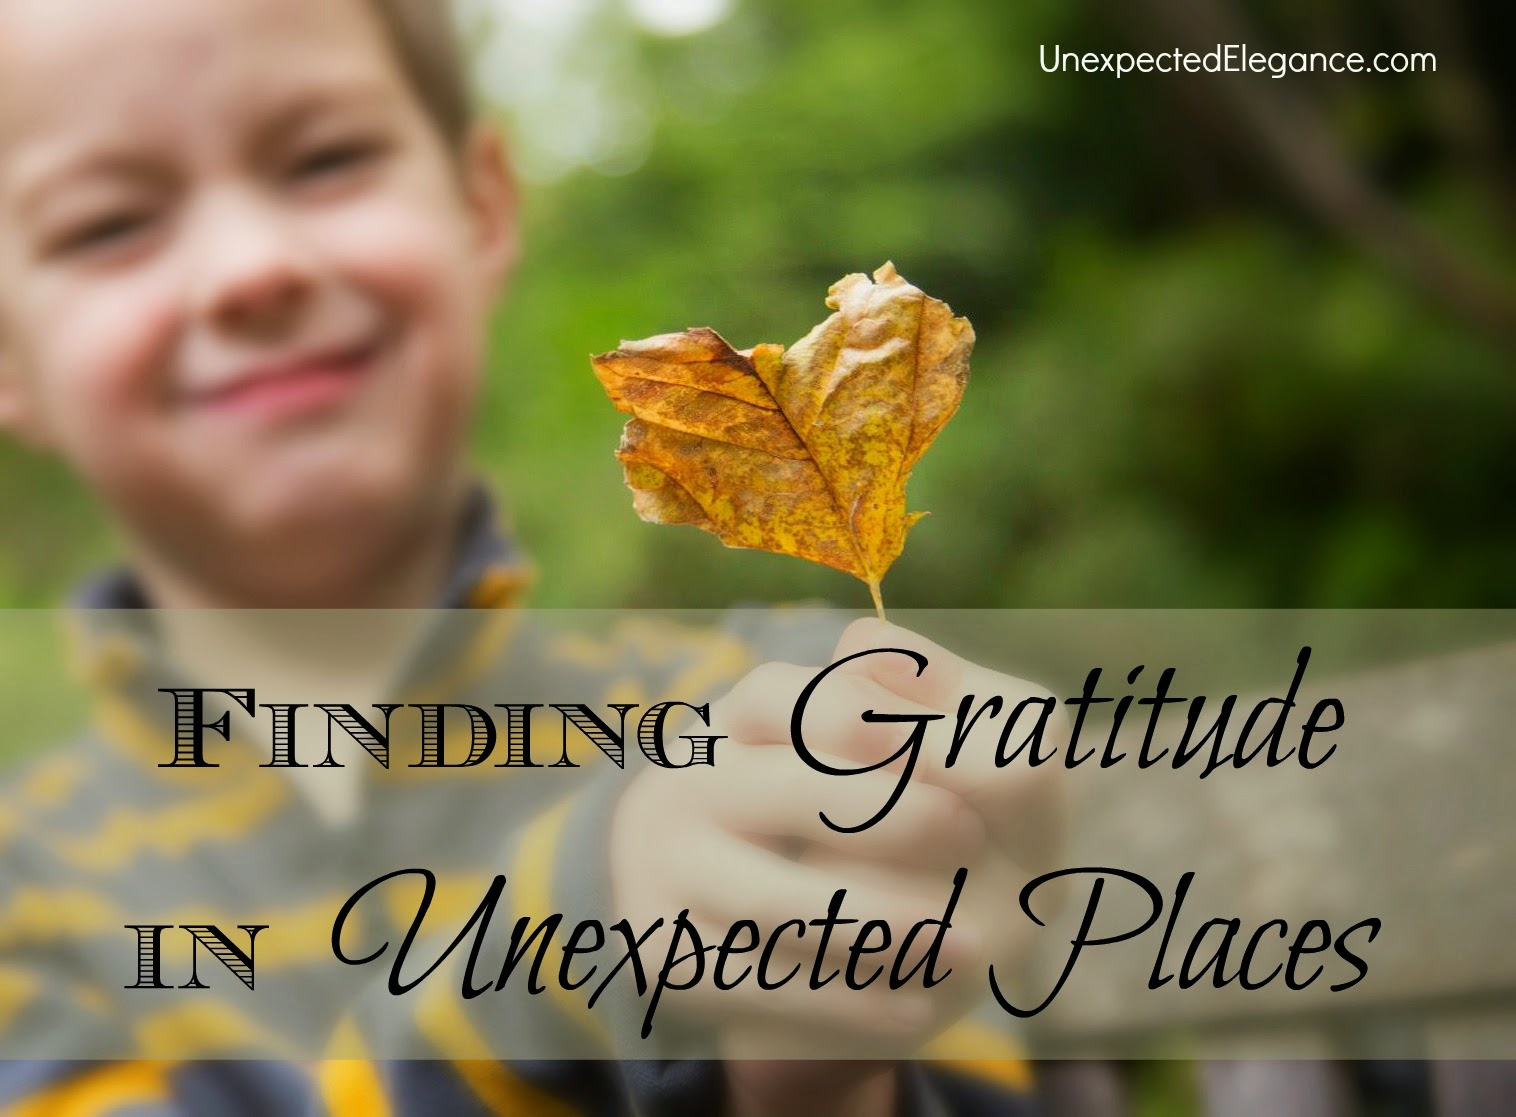 Take a look into scripture on finding gratitude in unexpected places.